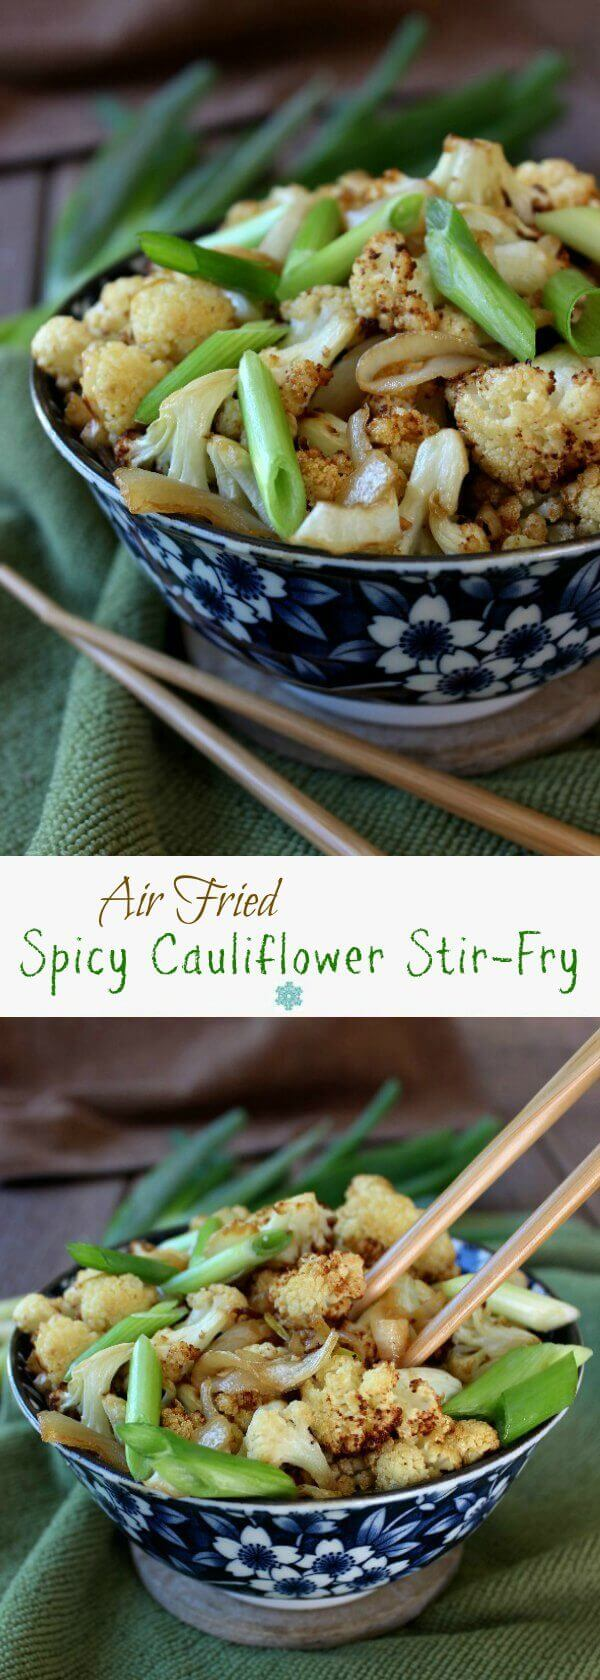 Air Fried Spicy Cauliflower Stir-Fry is fast and simple.  It is so gratifying to have a new side dish for your family to enjoy.  Delicious flavors get you lots of compliments.